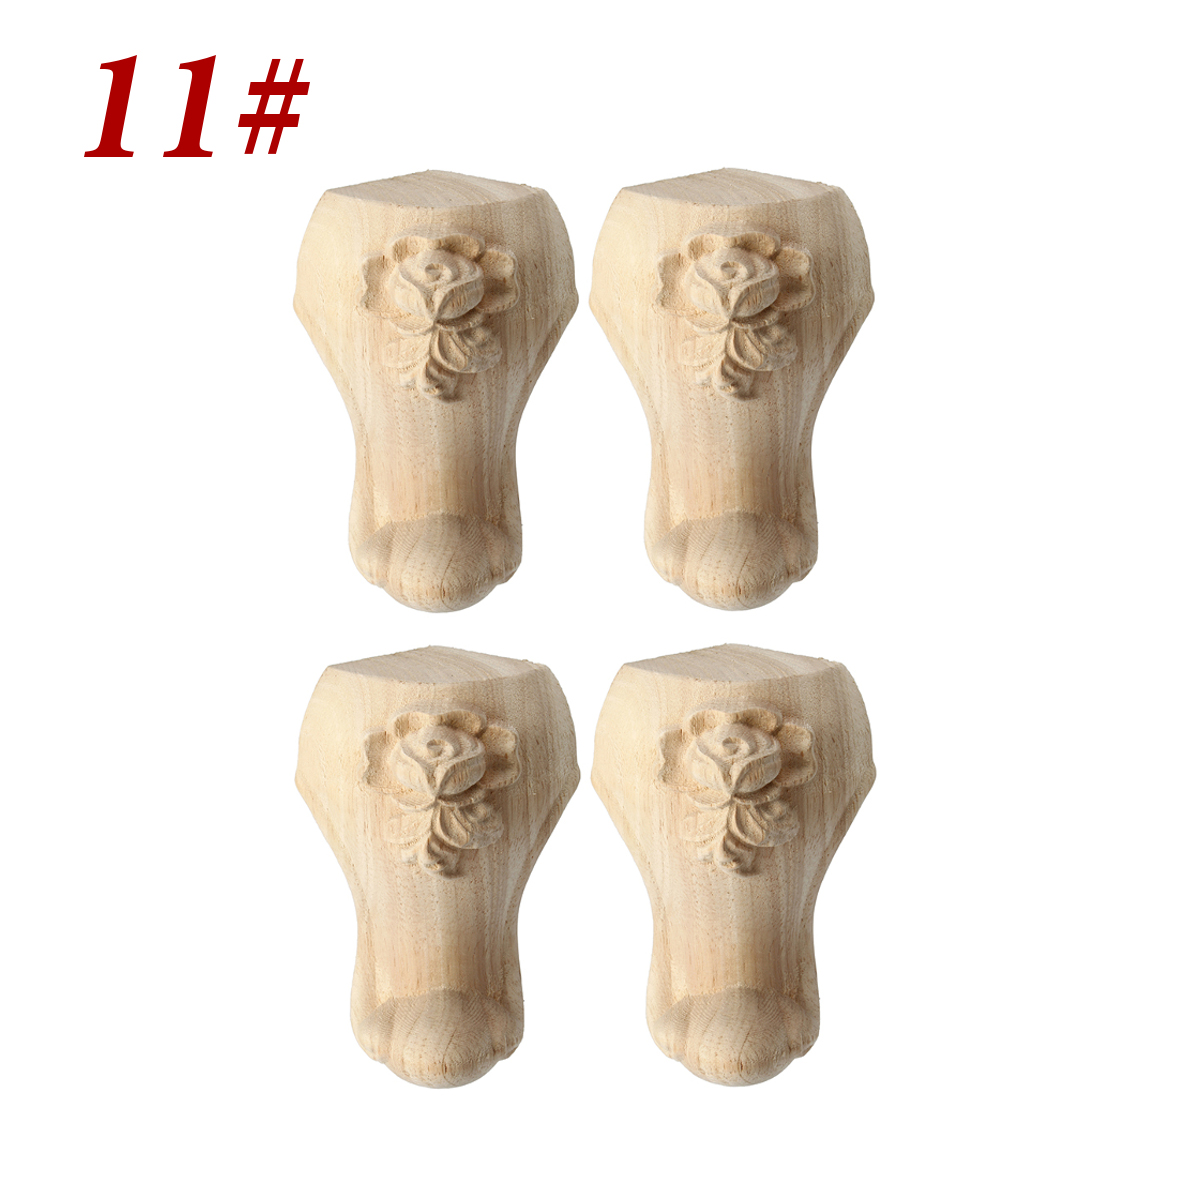 24-Type-4Pcs-10-15cm-European-Solid-Wood-Carved-Furniture-Foot-Leg-Cabinet-Couch thumbnail 19